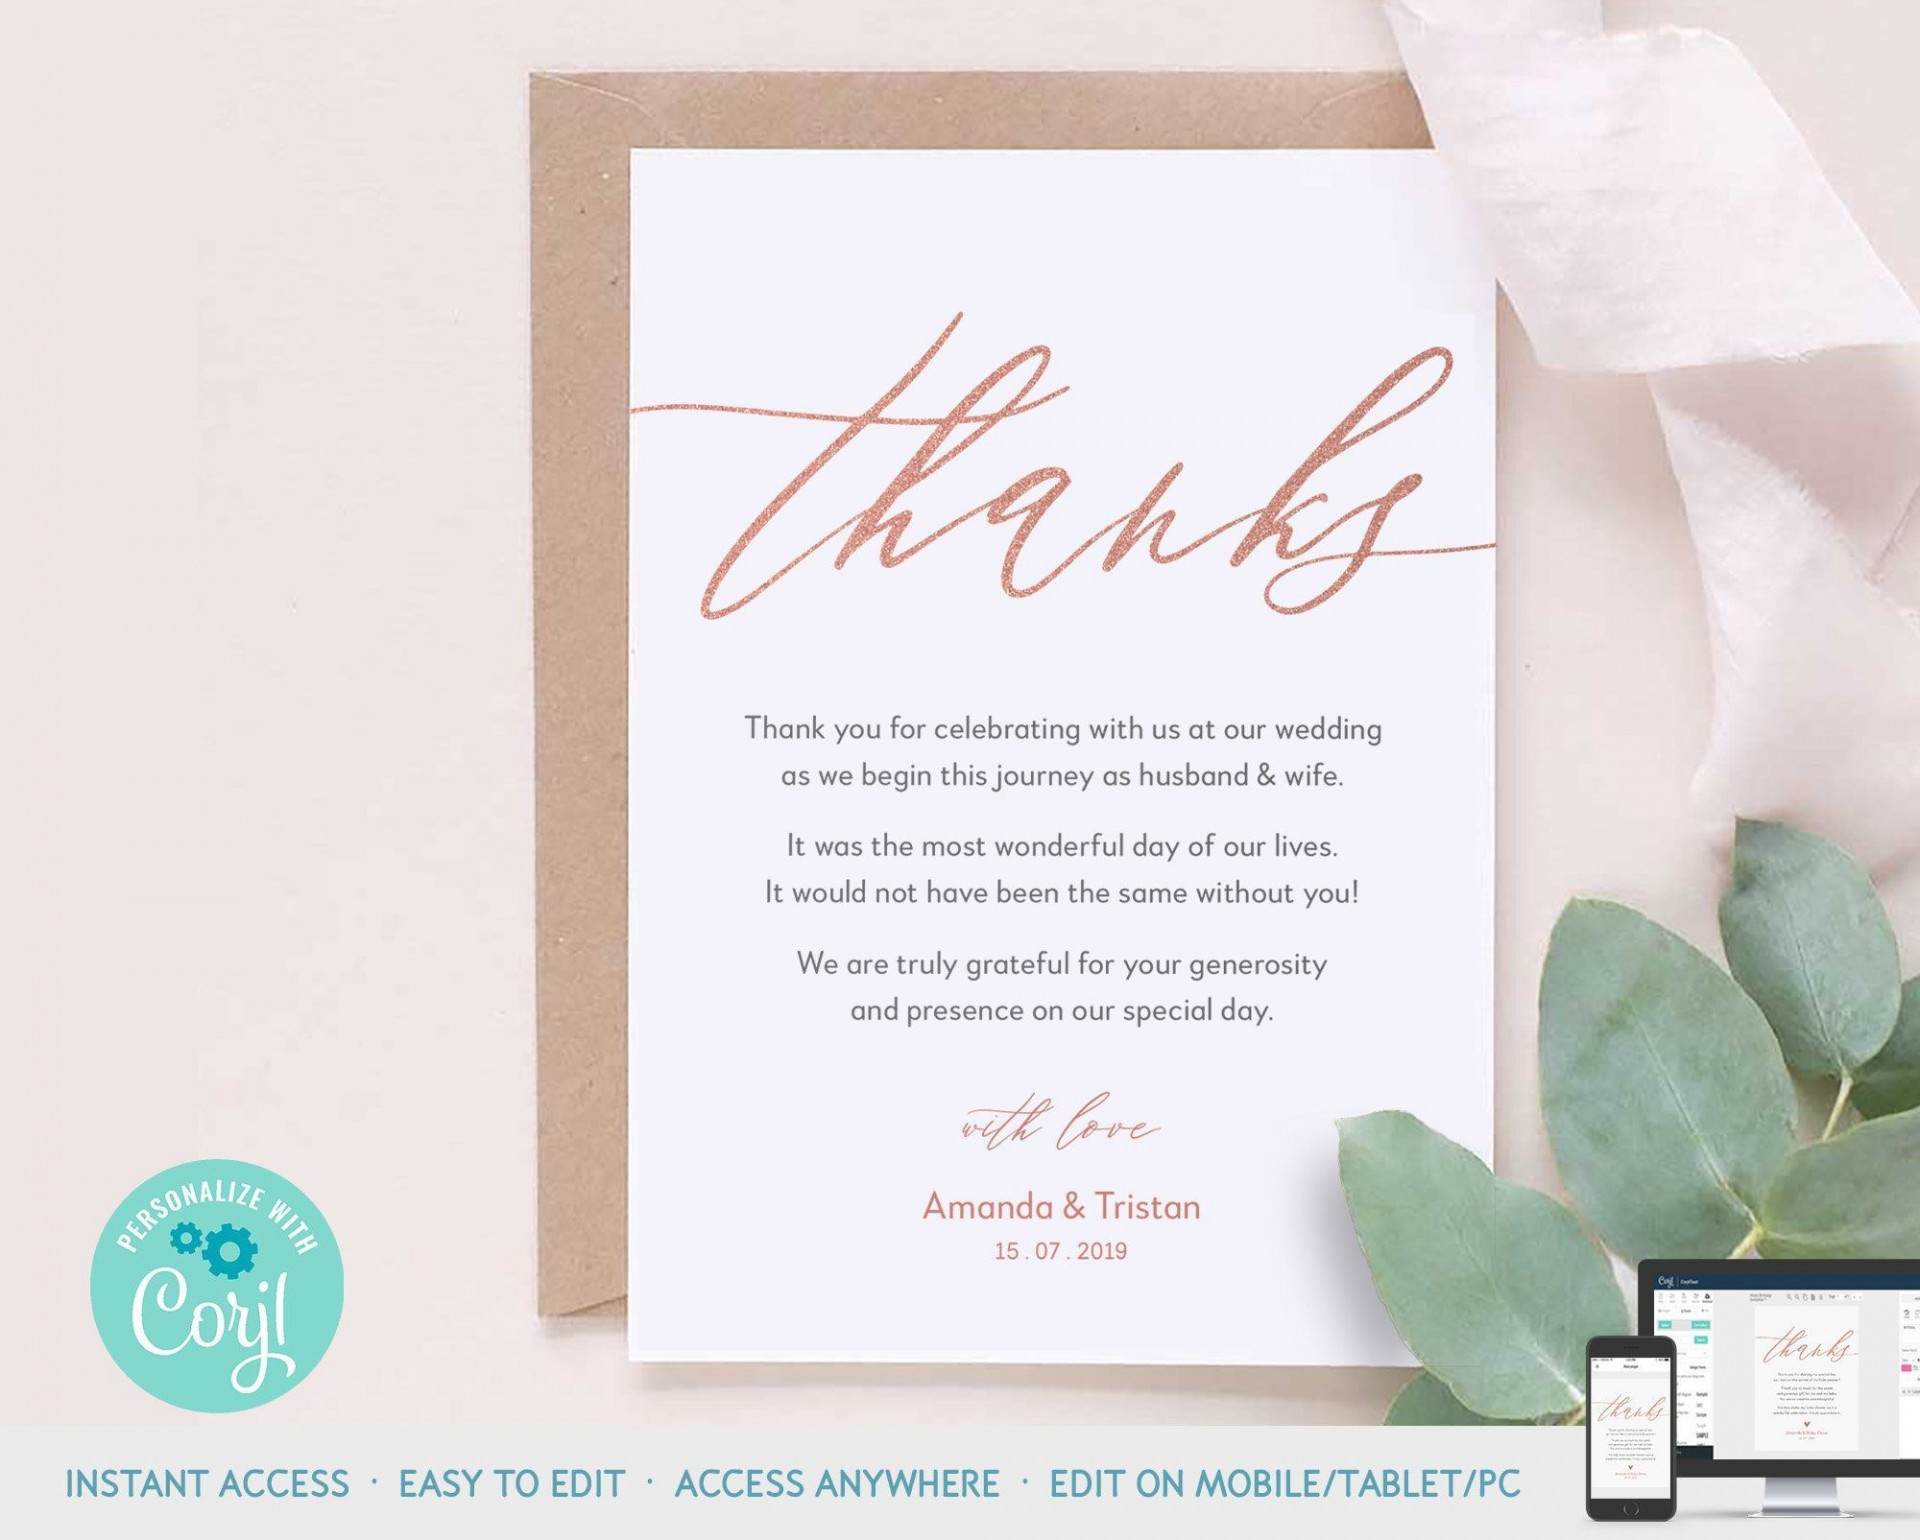 003 Top Wedding Thank You Note Template Design  Example Wording Sample For Money Gift Shower1920